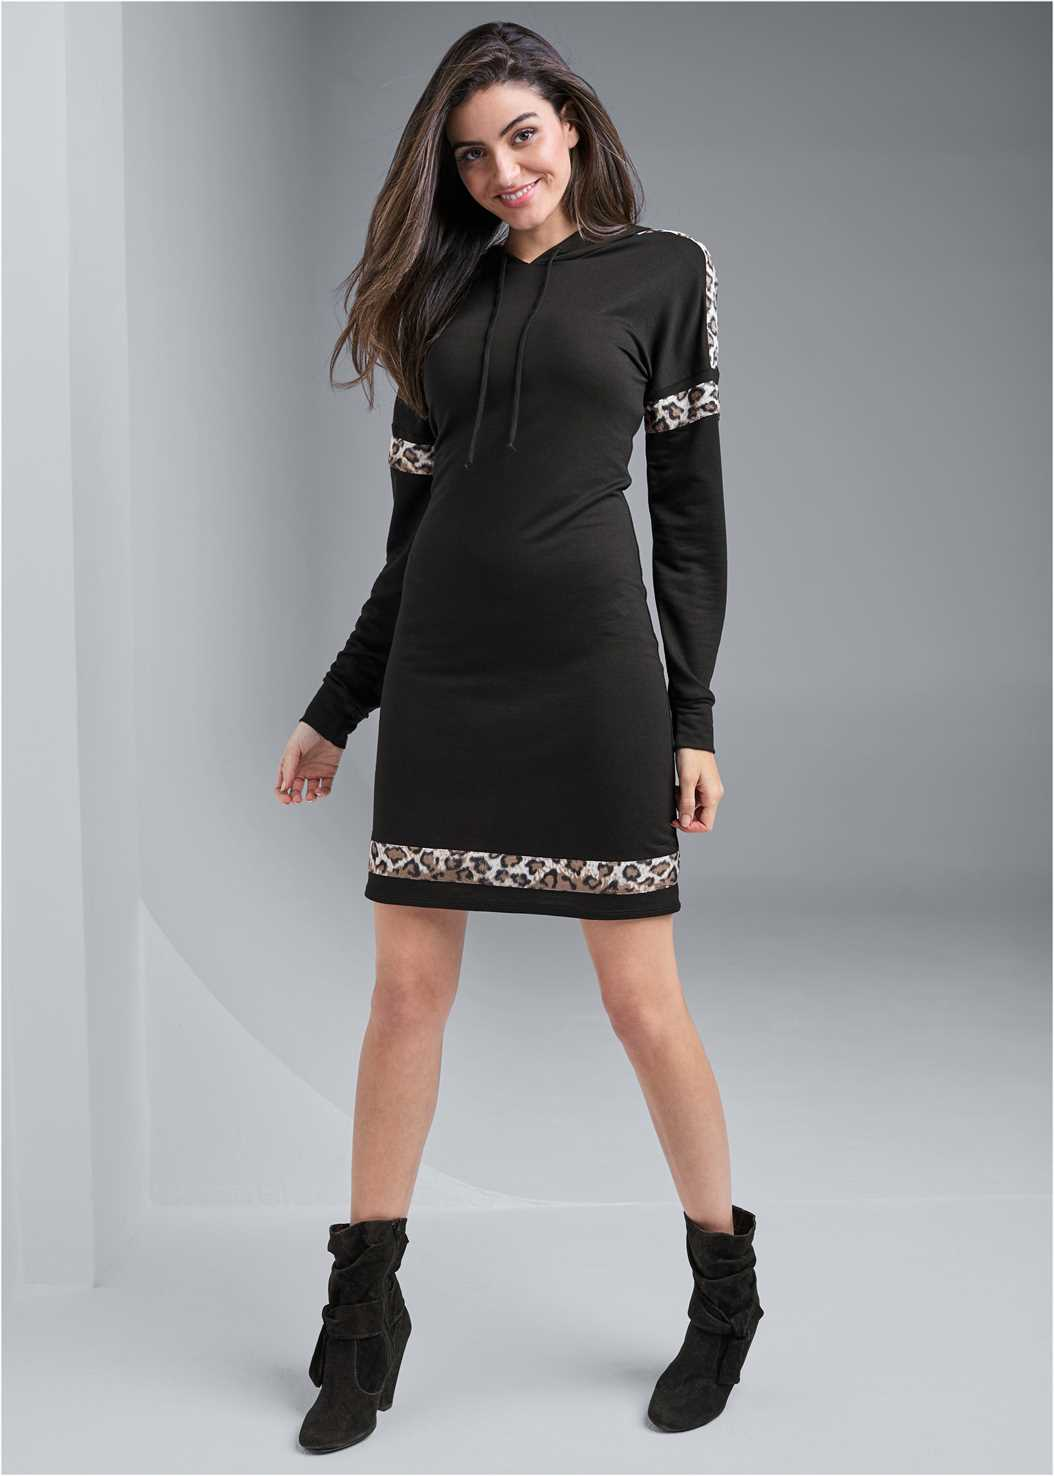 Leopard Detail Lounge Dress,Knotted Slouchy Boots